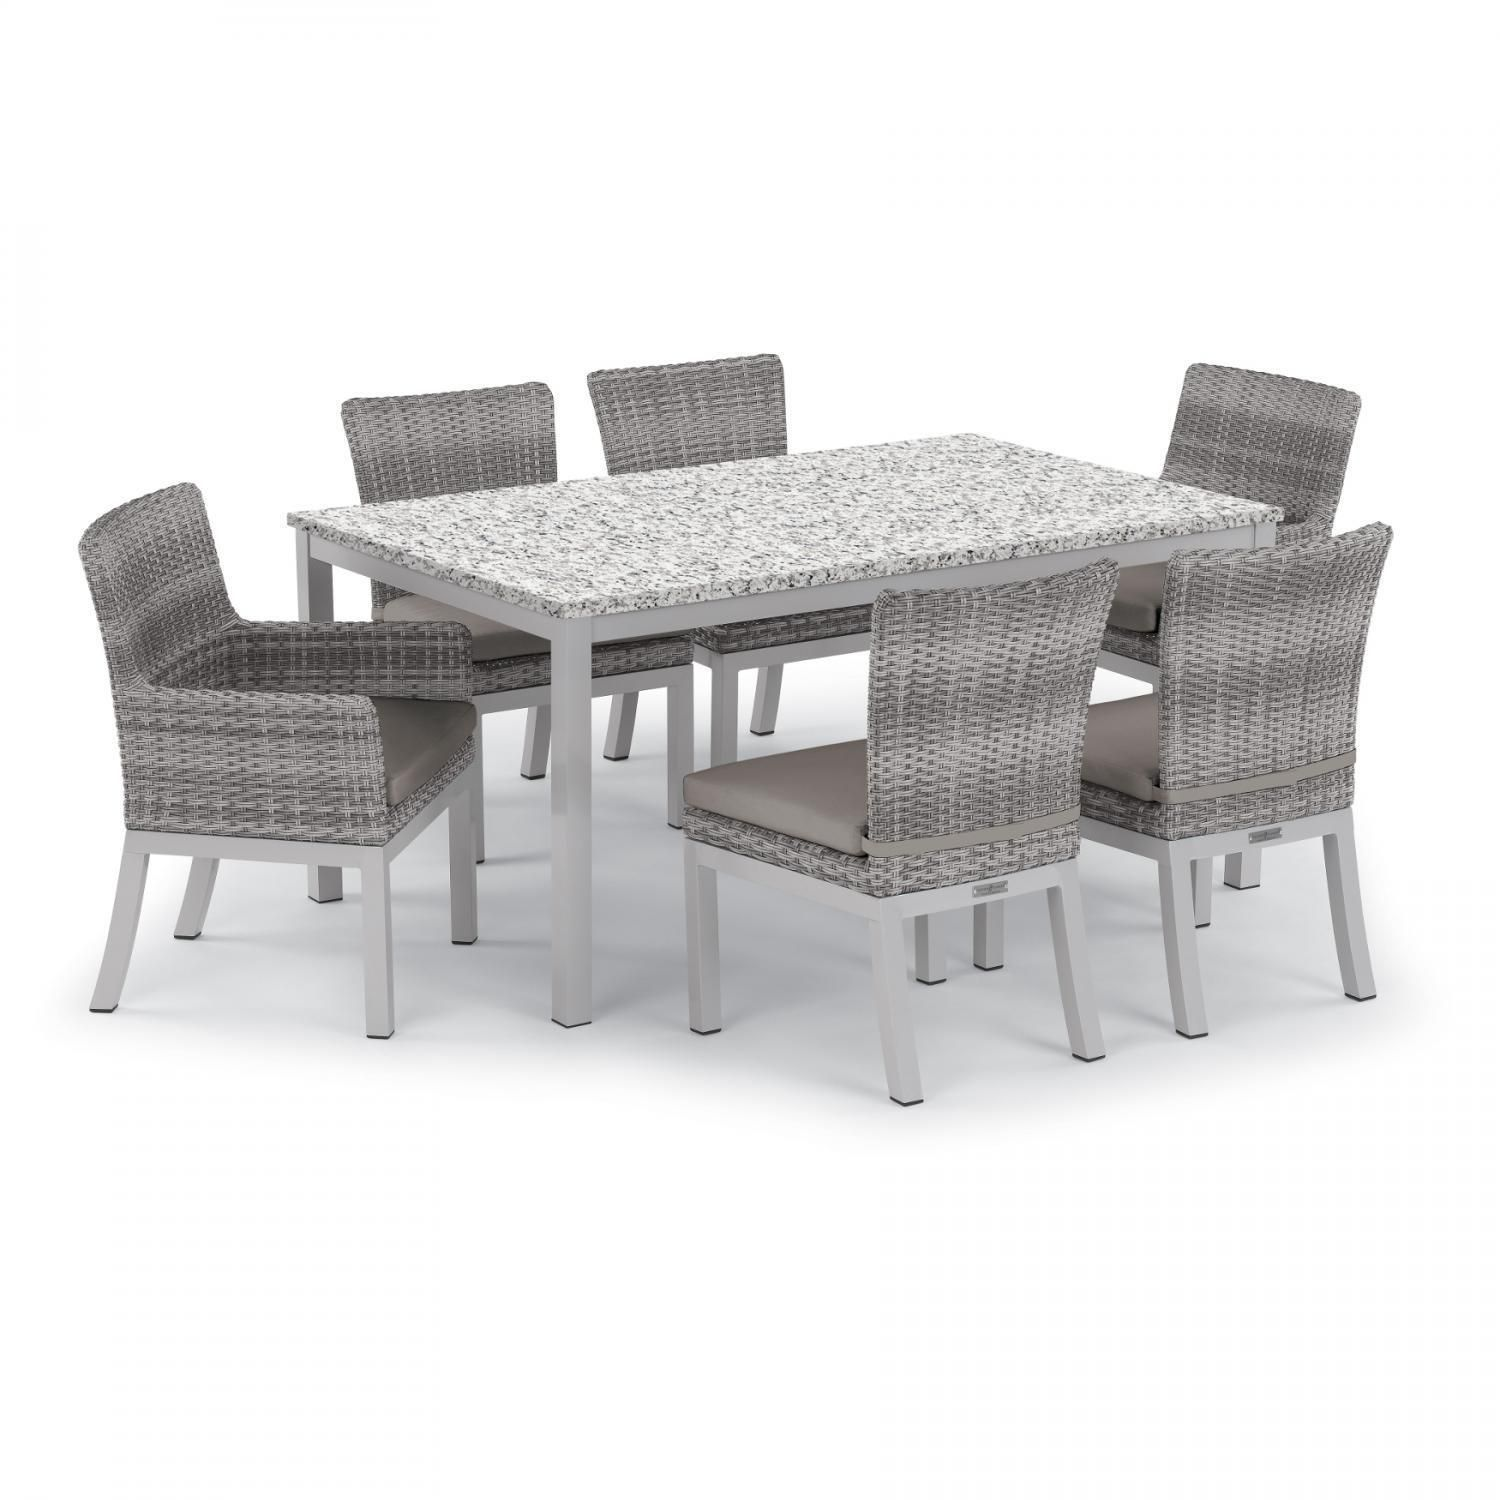 Oxford Garden Argento 7 Piece Wicker Patio Dining Set W/ 63 ...